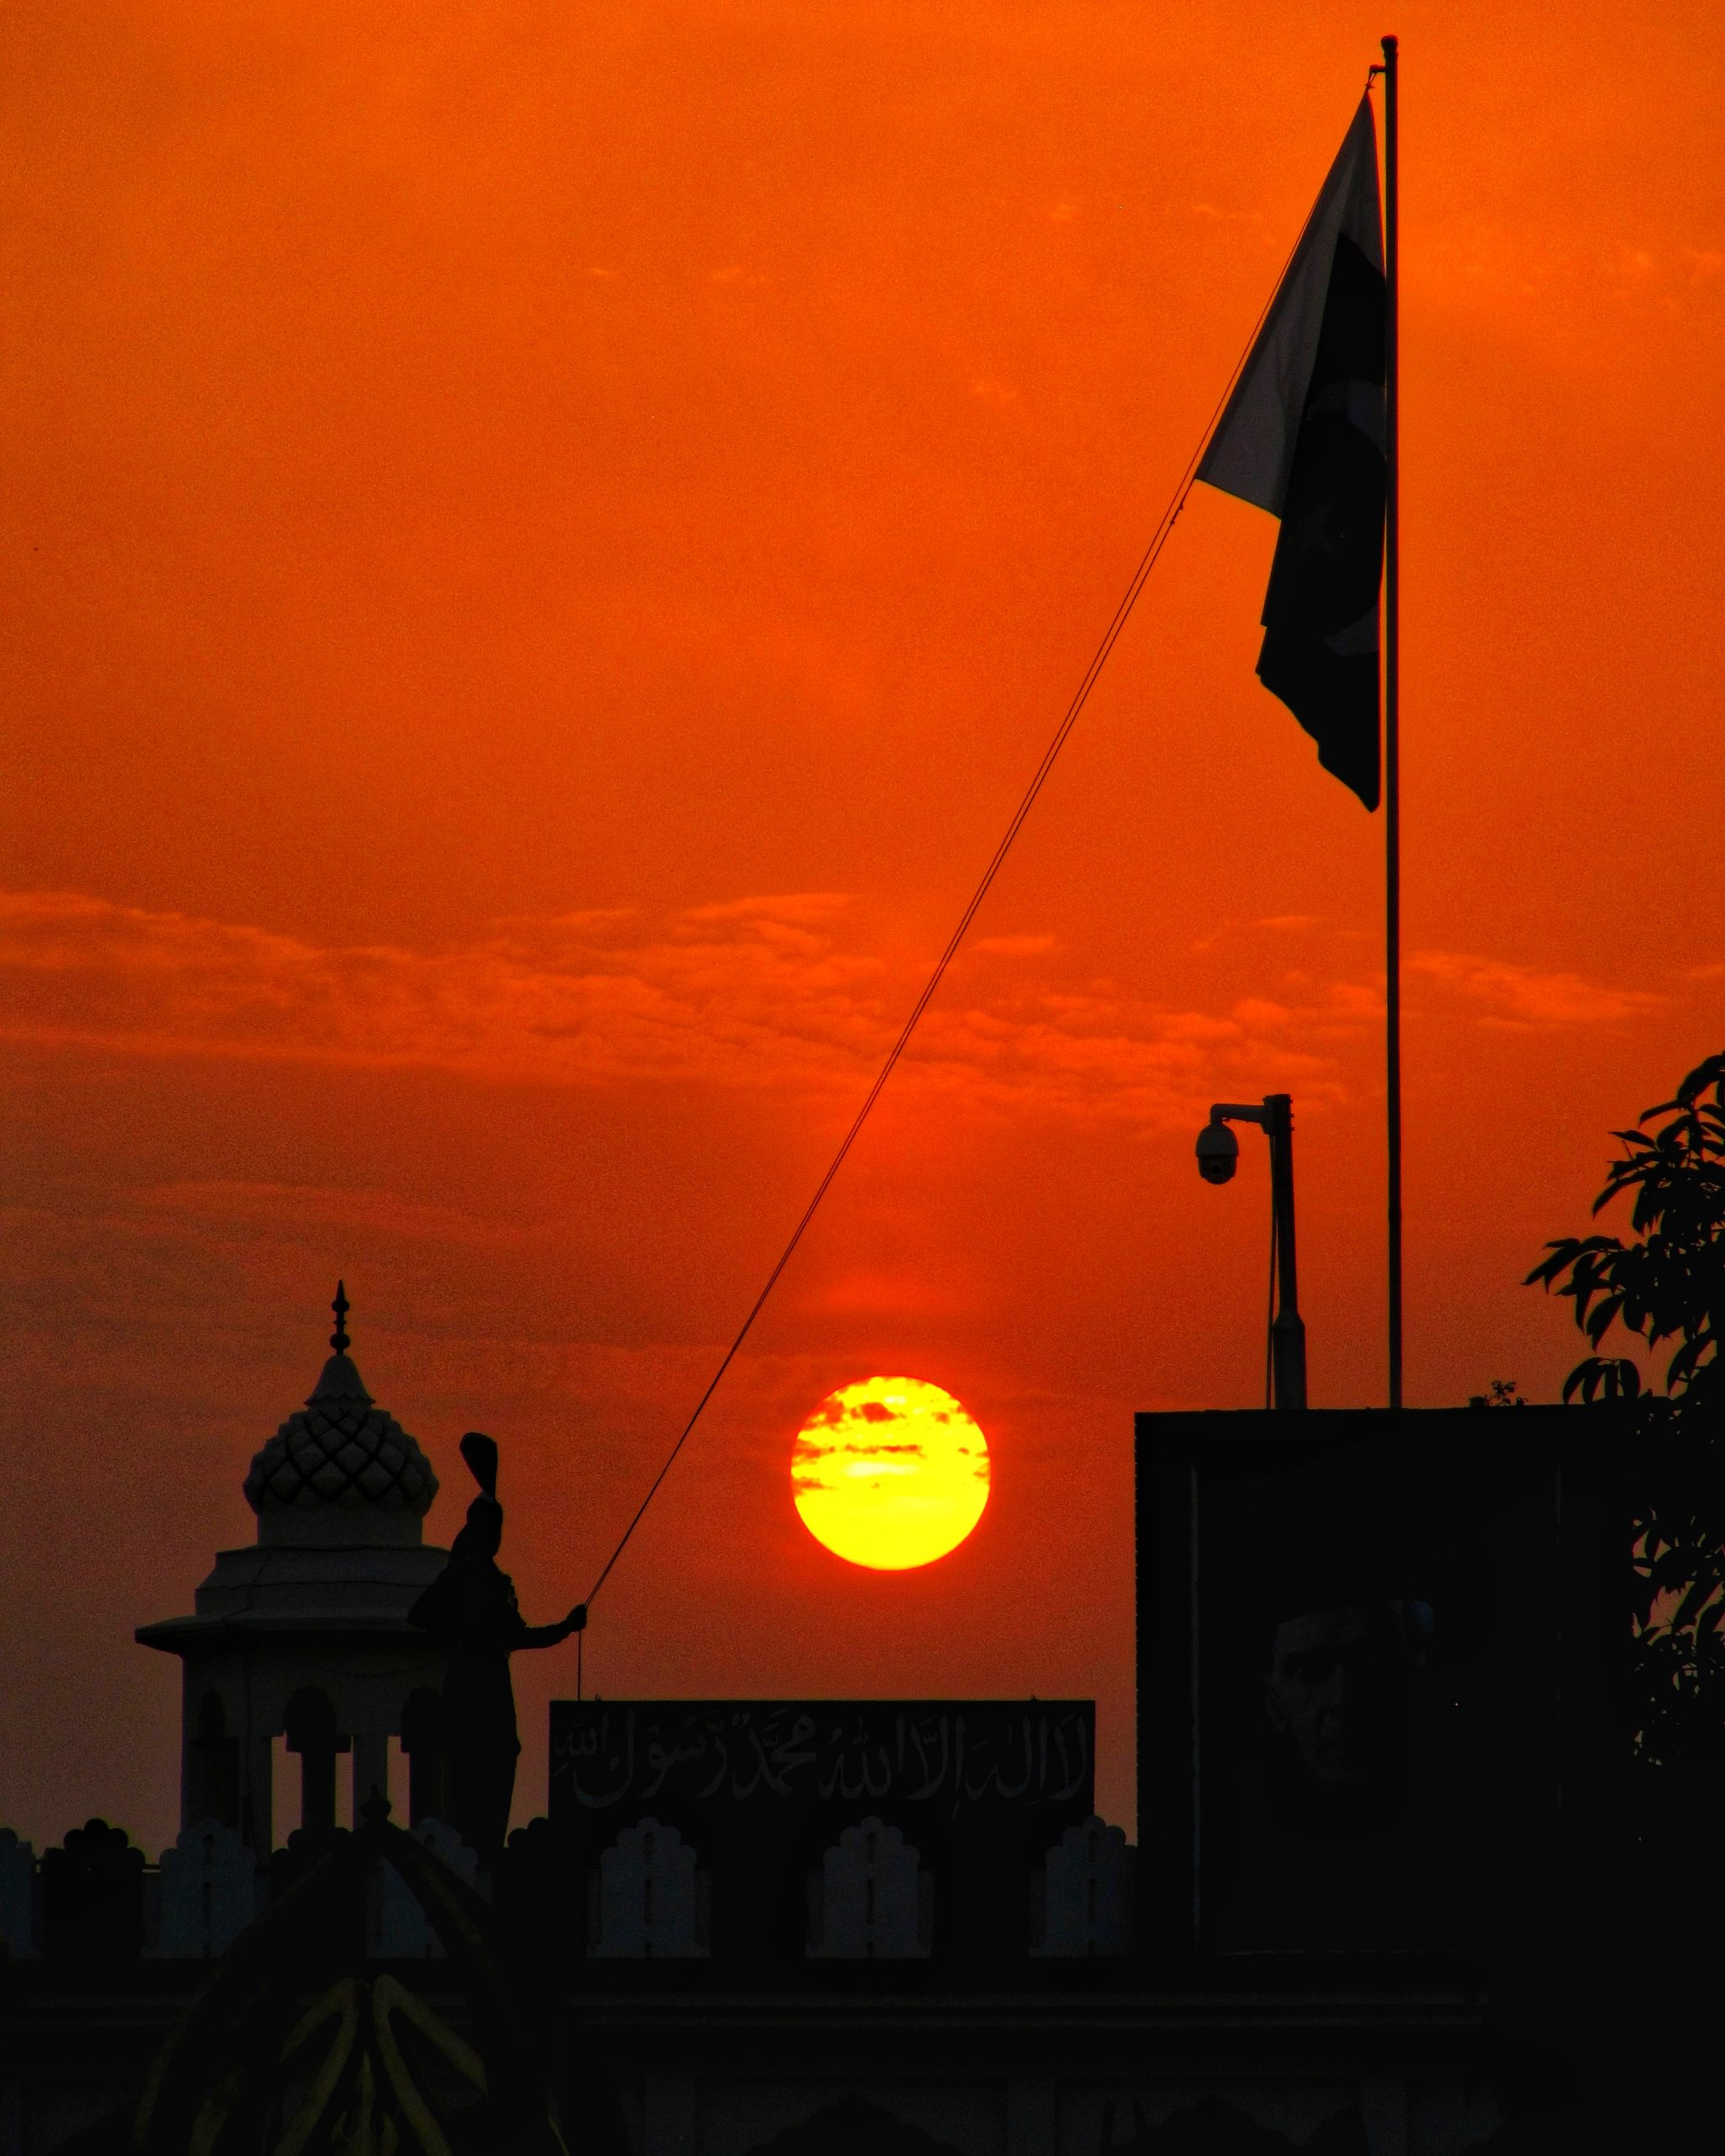 Indian flag being lowered in evening